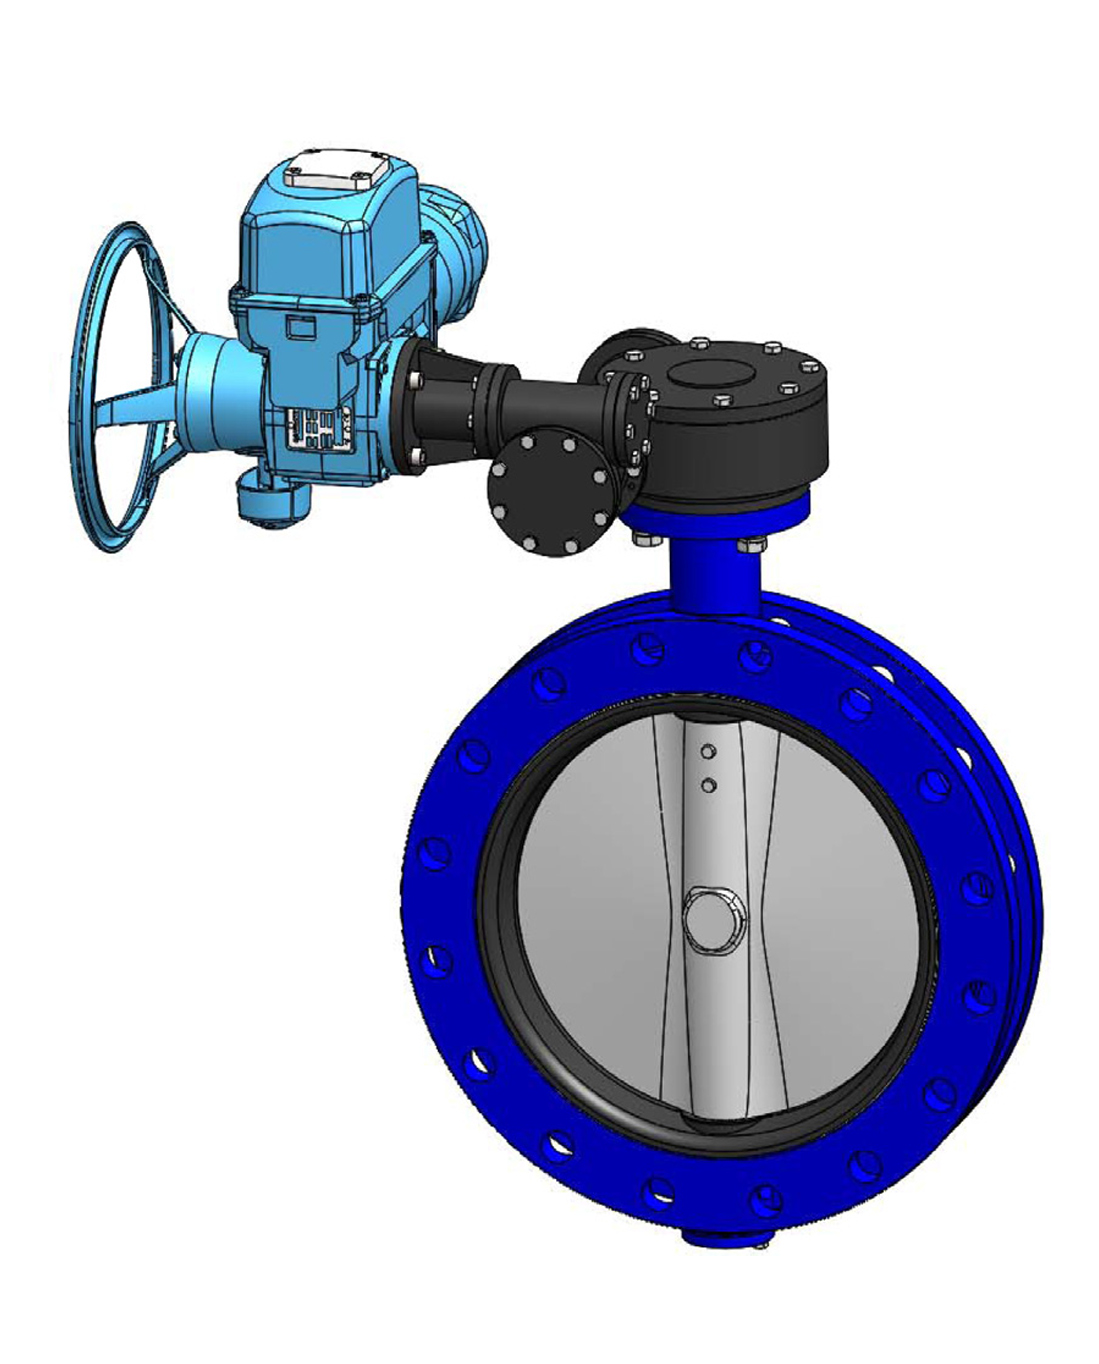 Double flanges type butterfly valve PN16 – ductile iron body – ductile iron disc – BERNARD electric operator